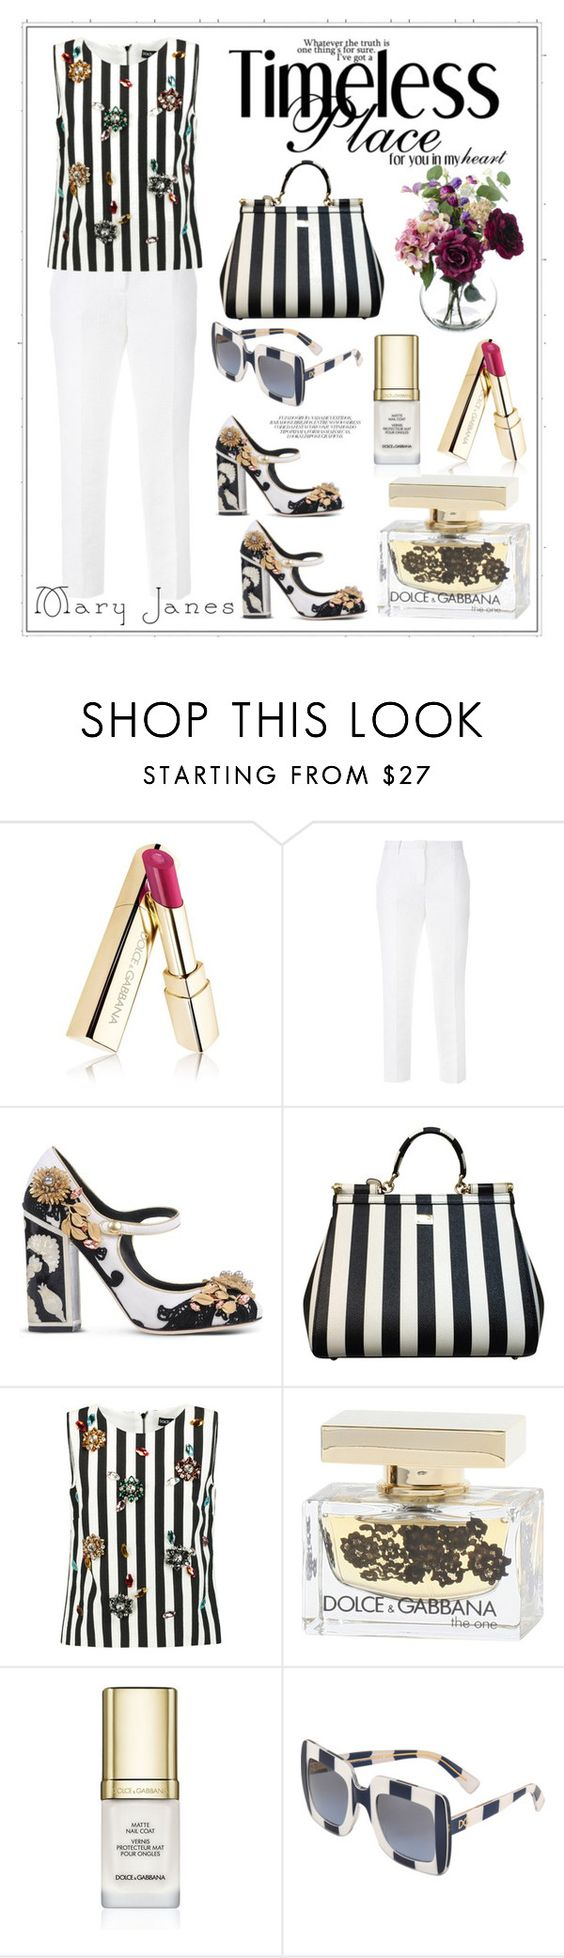 """Untitled #302"" by meryflower ❤ liked on Polyvore featuring Dolce&Gabbana, stripes, maryjanes and dolceandgabanna"